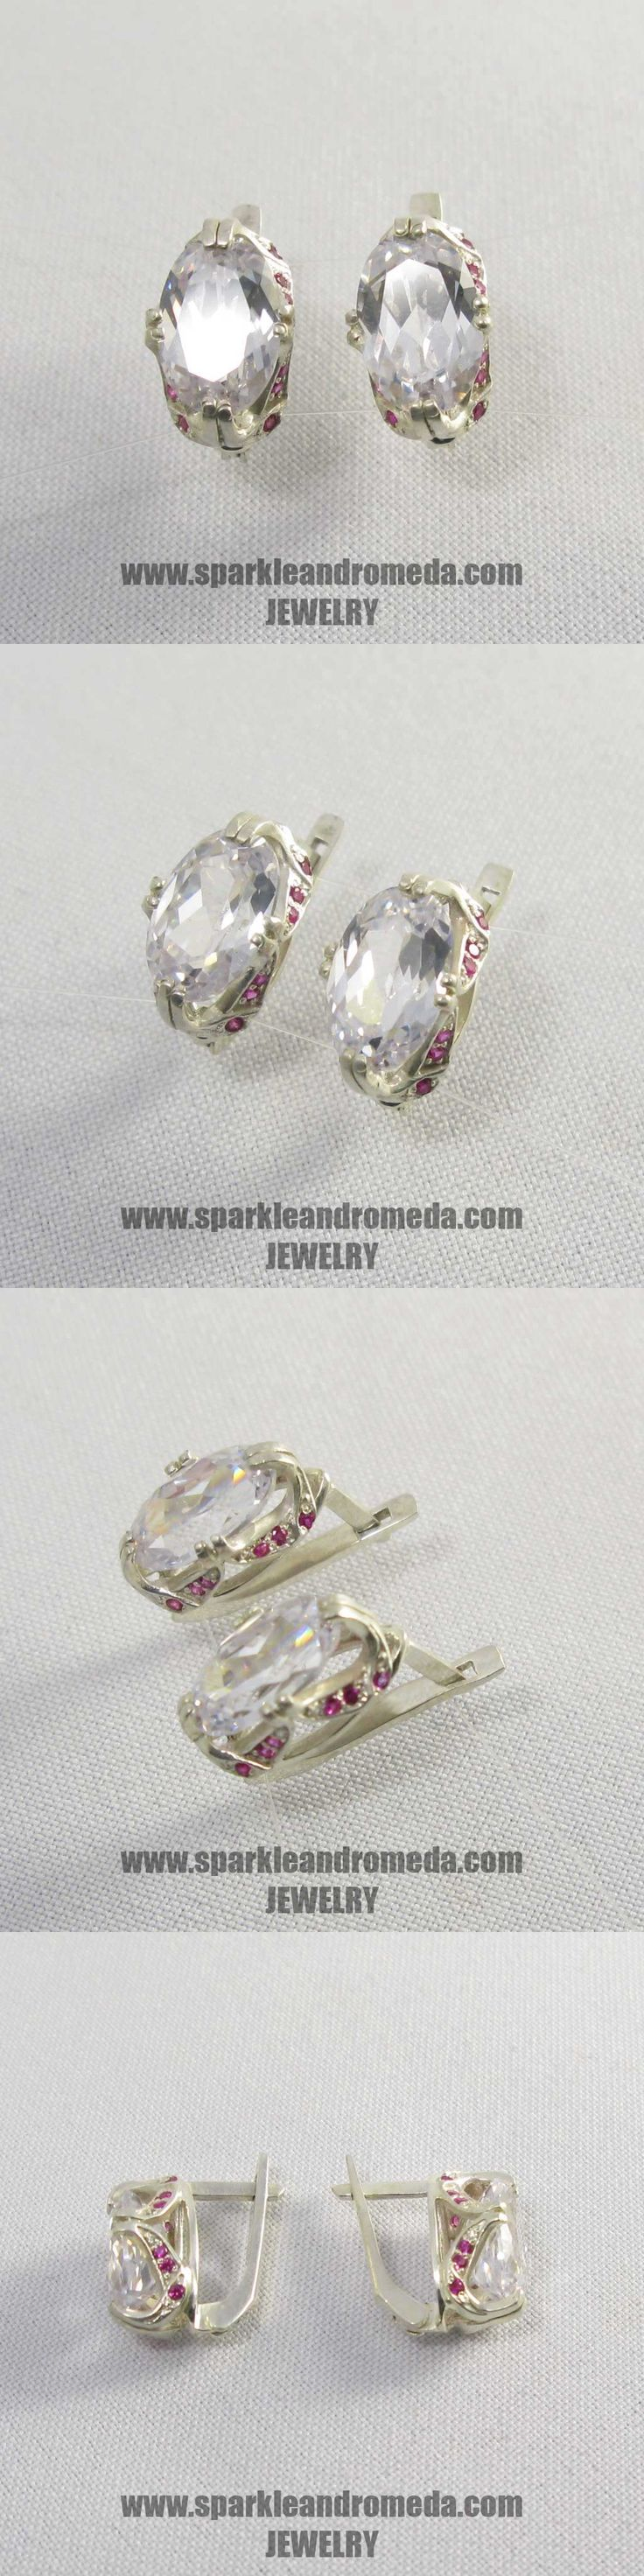 Sterling 925 silver earrings with 2 oval 12×8 mm white topaz color and 24 round 1,25 mm and 8 round 1 mm pink ruby color cubic zirconia gemstones.